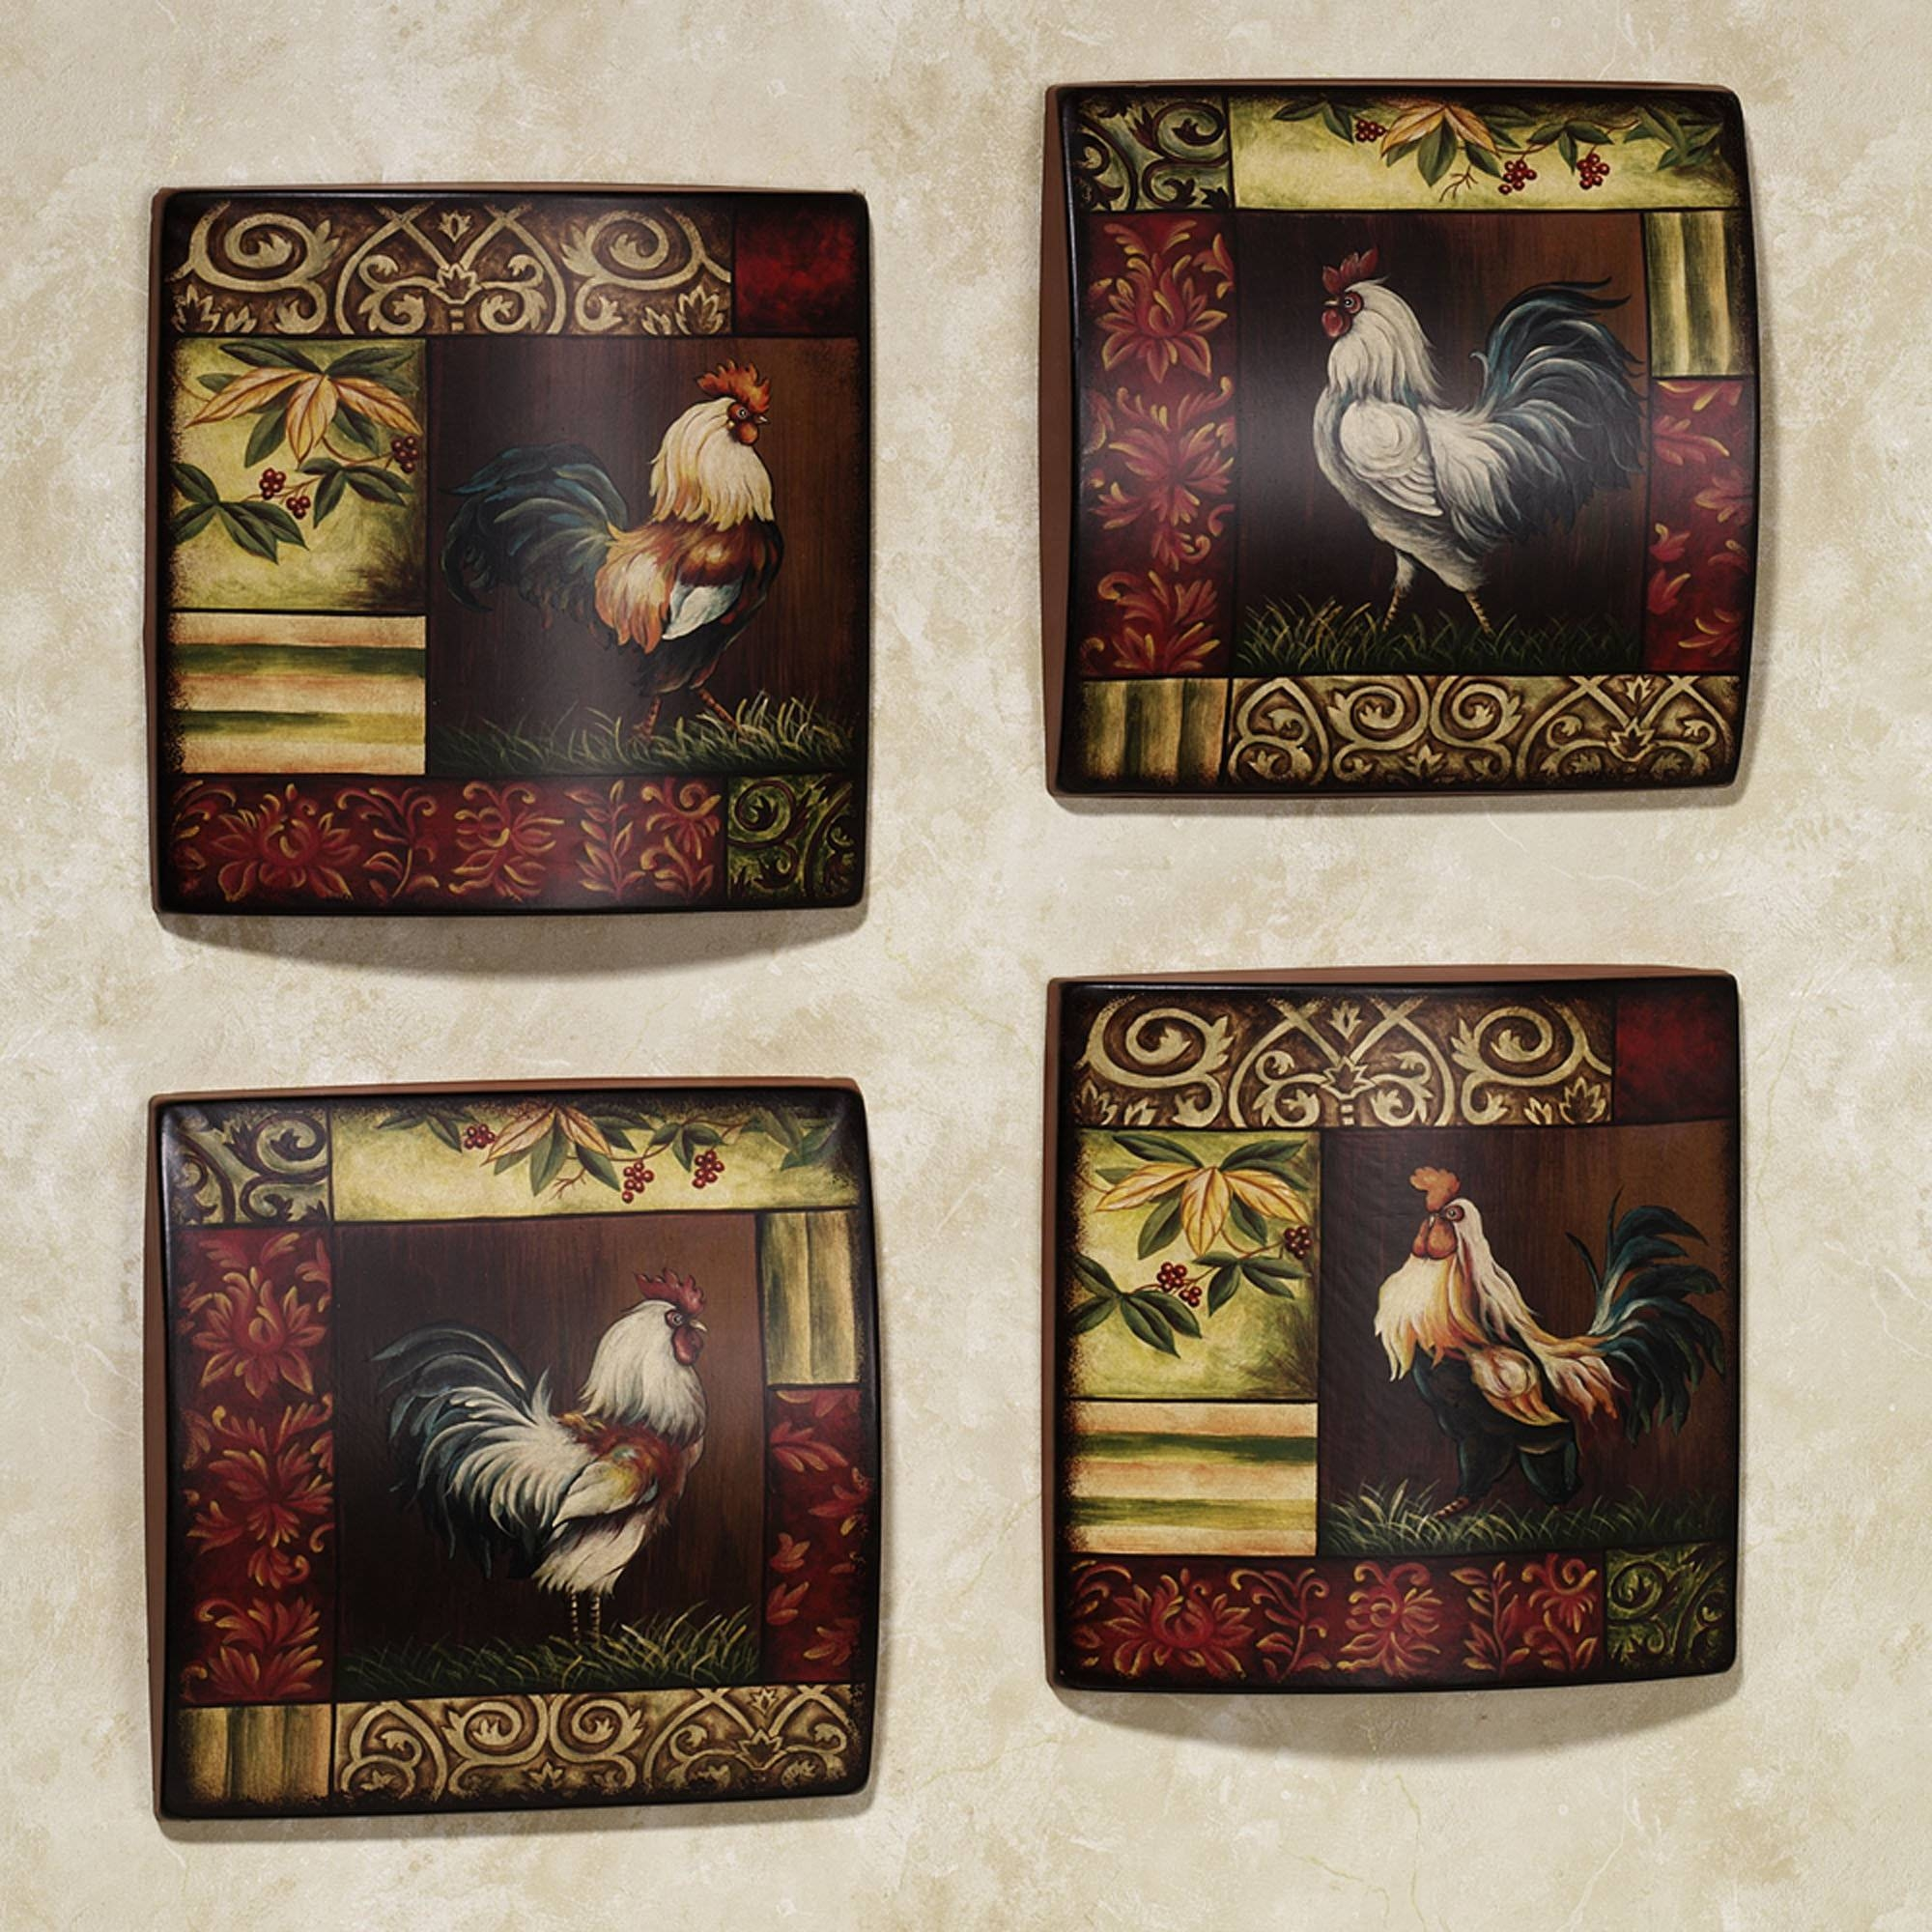 Kitchen : Kitchen Hangings With Wall Art And Decor Also Ta Home Within Most Recently Released Inspirational Wall Plaques (View 15 of 20)